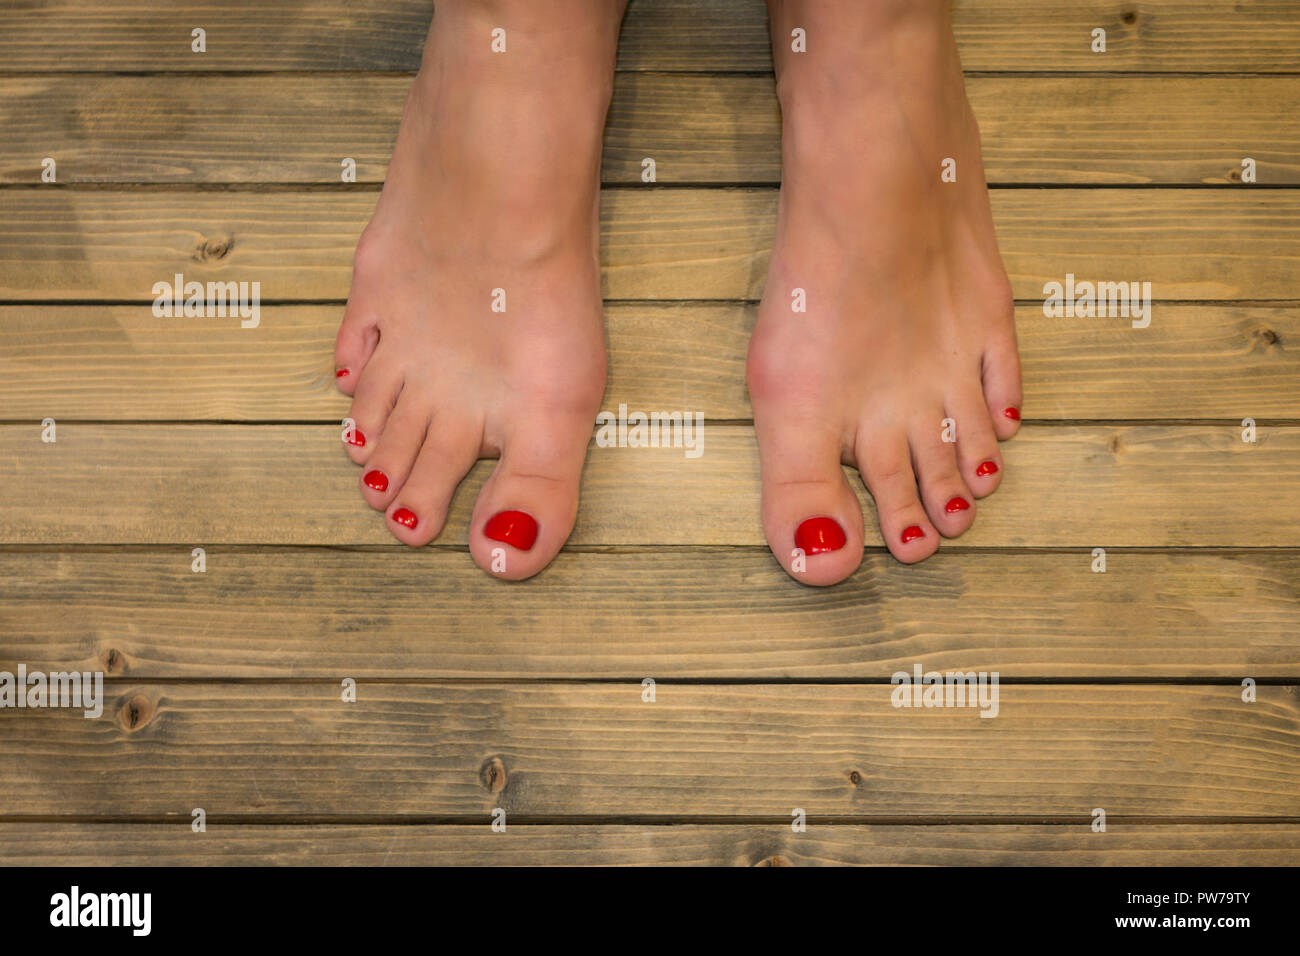 Female feet in on wooden floor or background - Stock Image